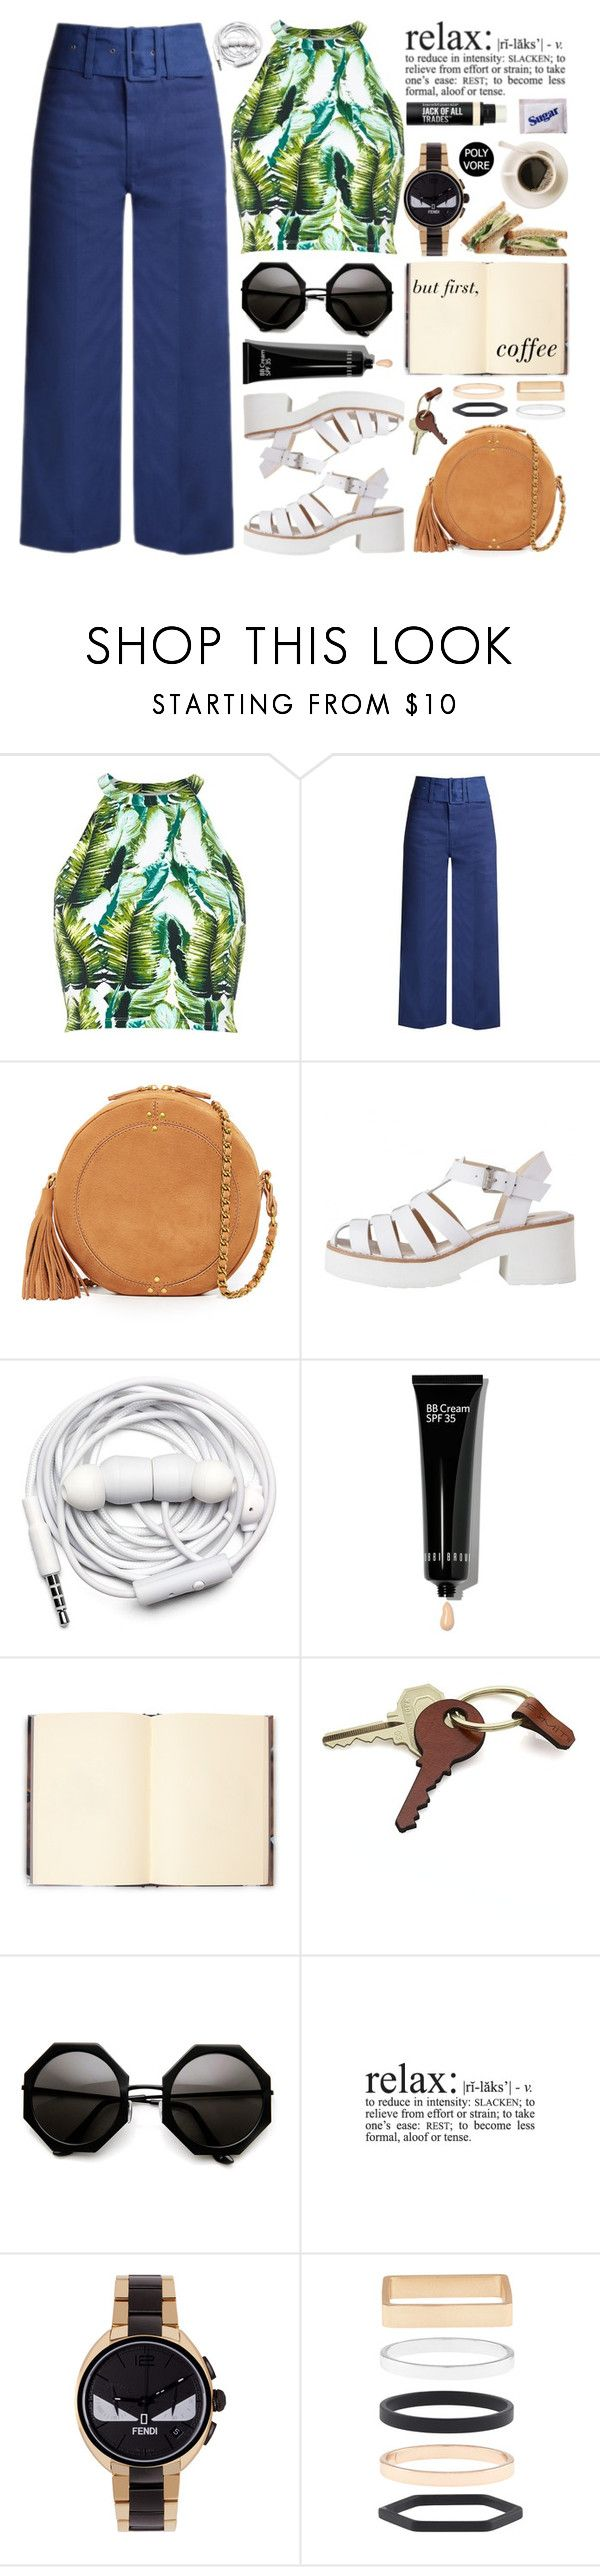 """Just a Sip of Coffee"" by stavrolga on Polyvore featuring River Island, Sea, New York, Jérôme Dreyfuss, Urbanears, Bobbi Brown Cosmetics, Weston, Crate and Barrel, Fendi, Accessorize and Bare Escentuals"